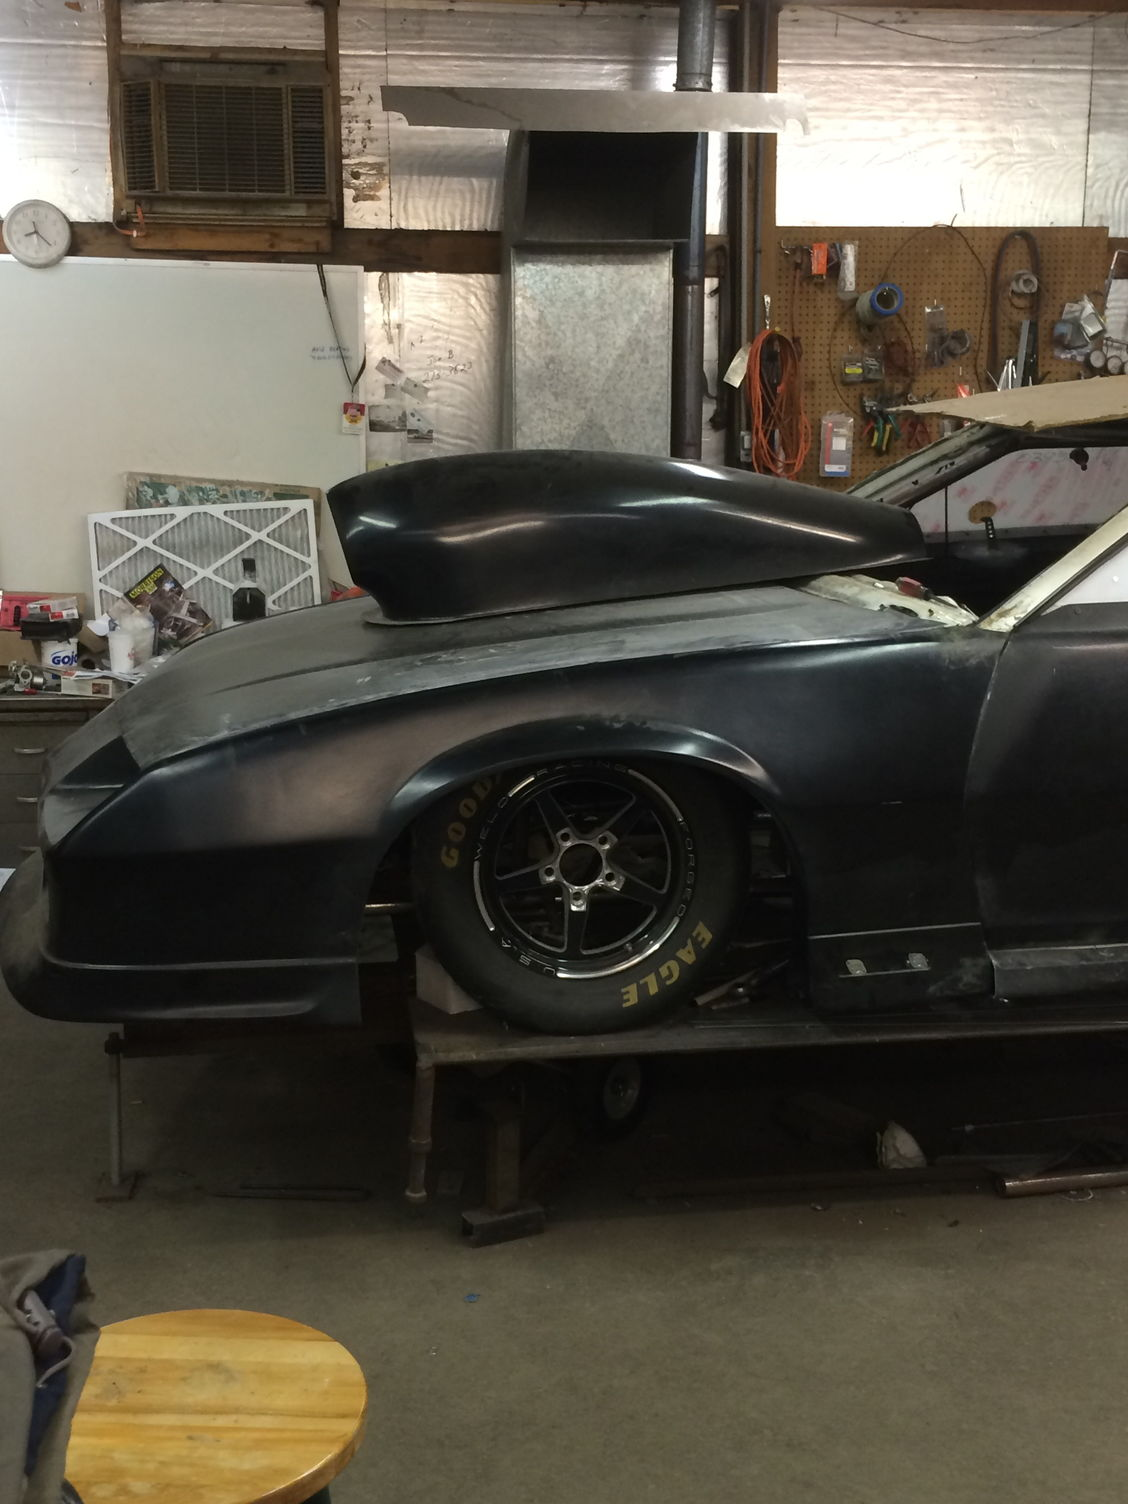 1991 Camaro Full Chassis Drag Car Build Third Generation F Body Message Boards